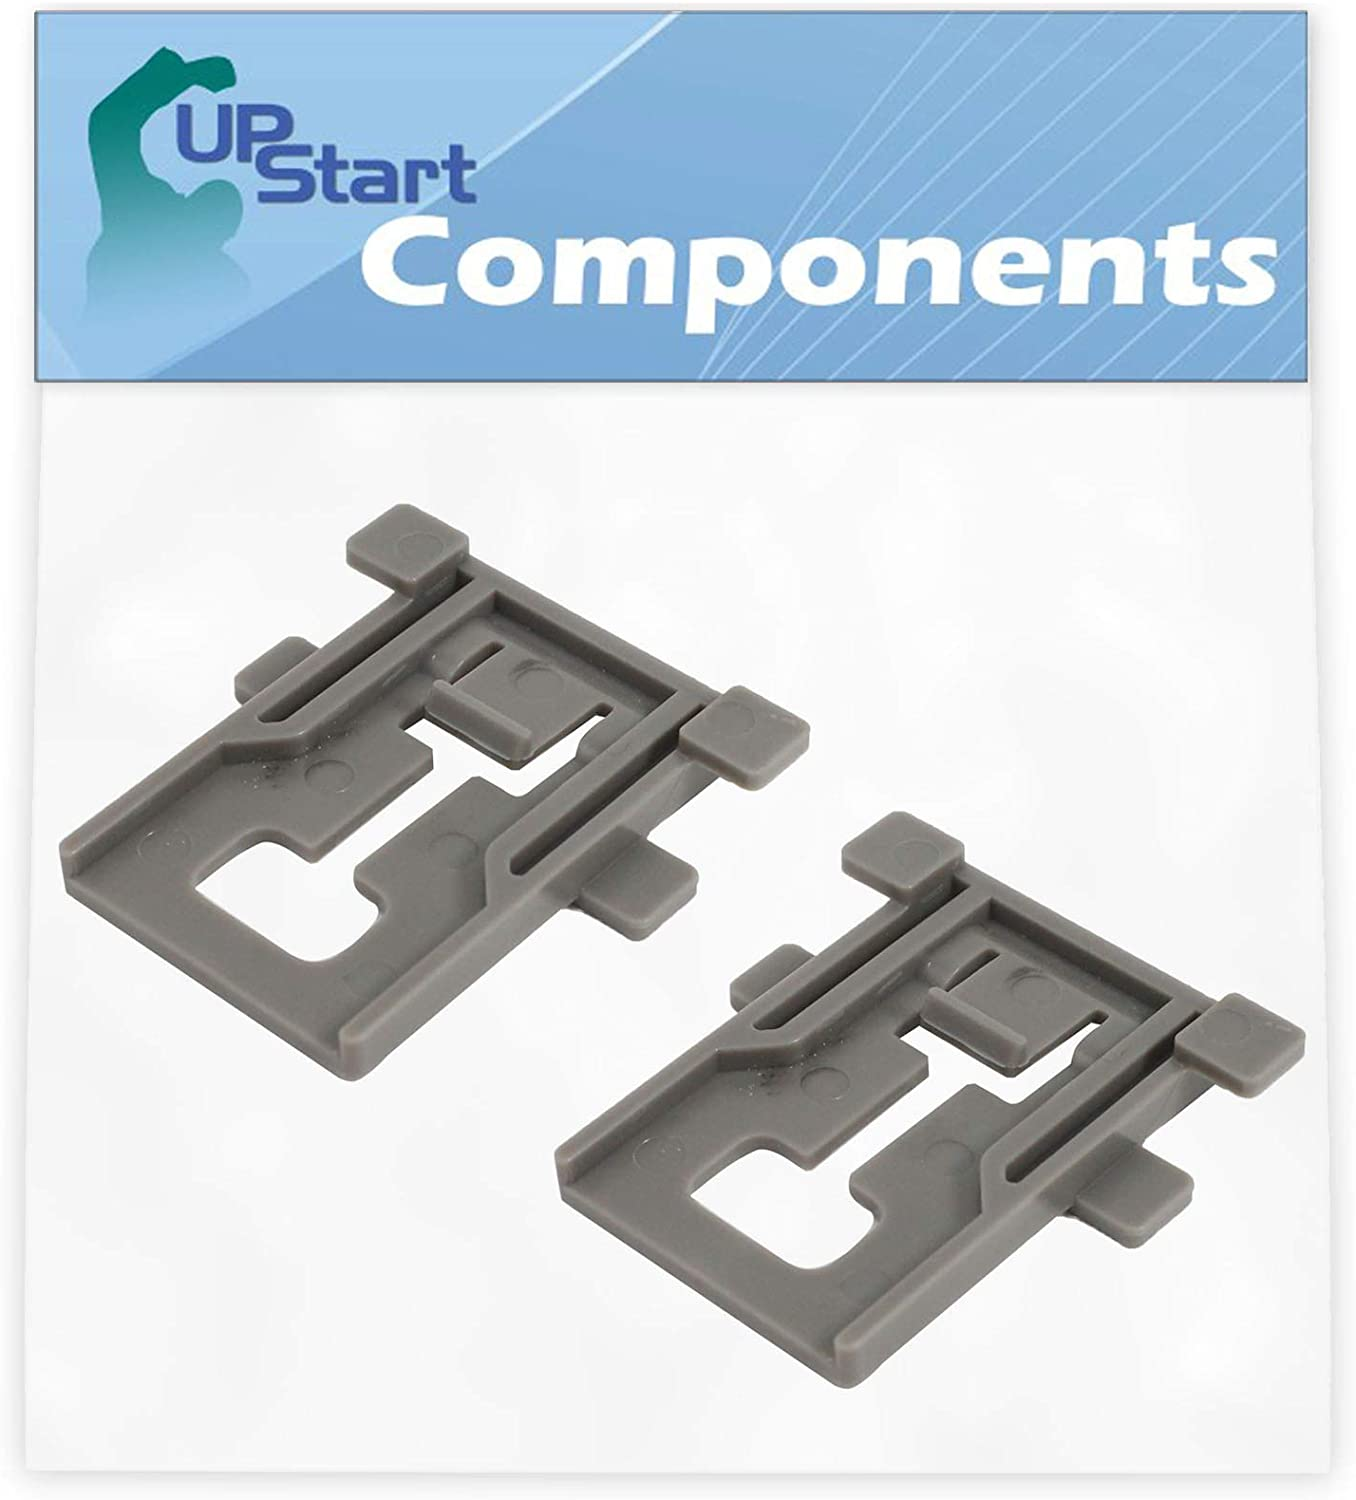 2-Pack W10195840 Dishwasher Rack Adjuster Replacement for Kenmore/Sears 665.14793N511 Dishwasher - Compatible with WPW10195840 Top Rack Adjuster